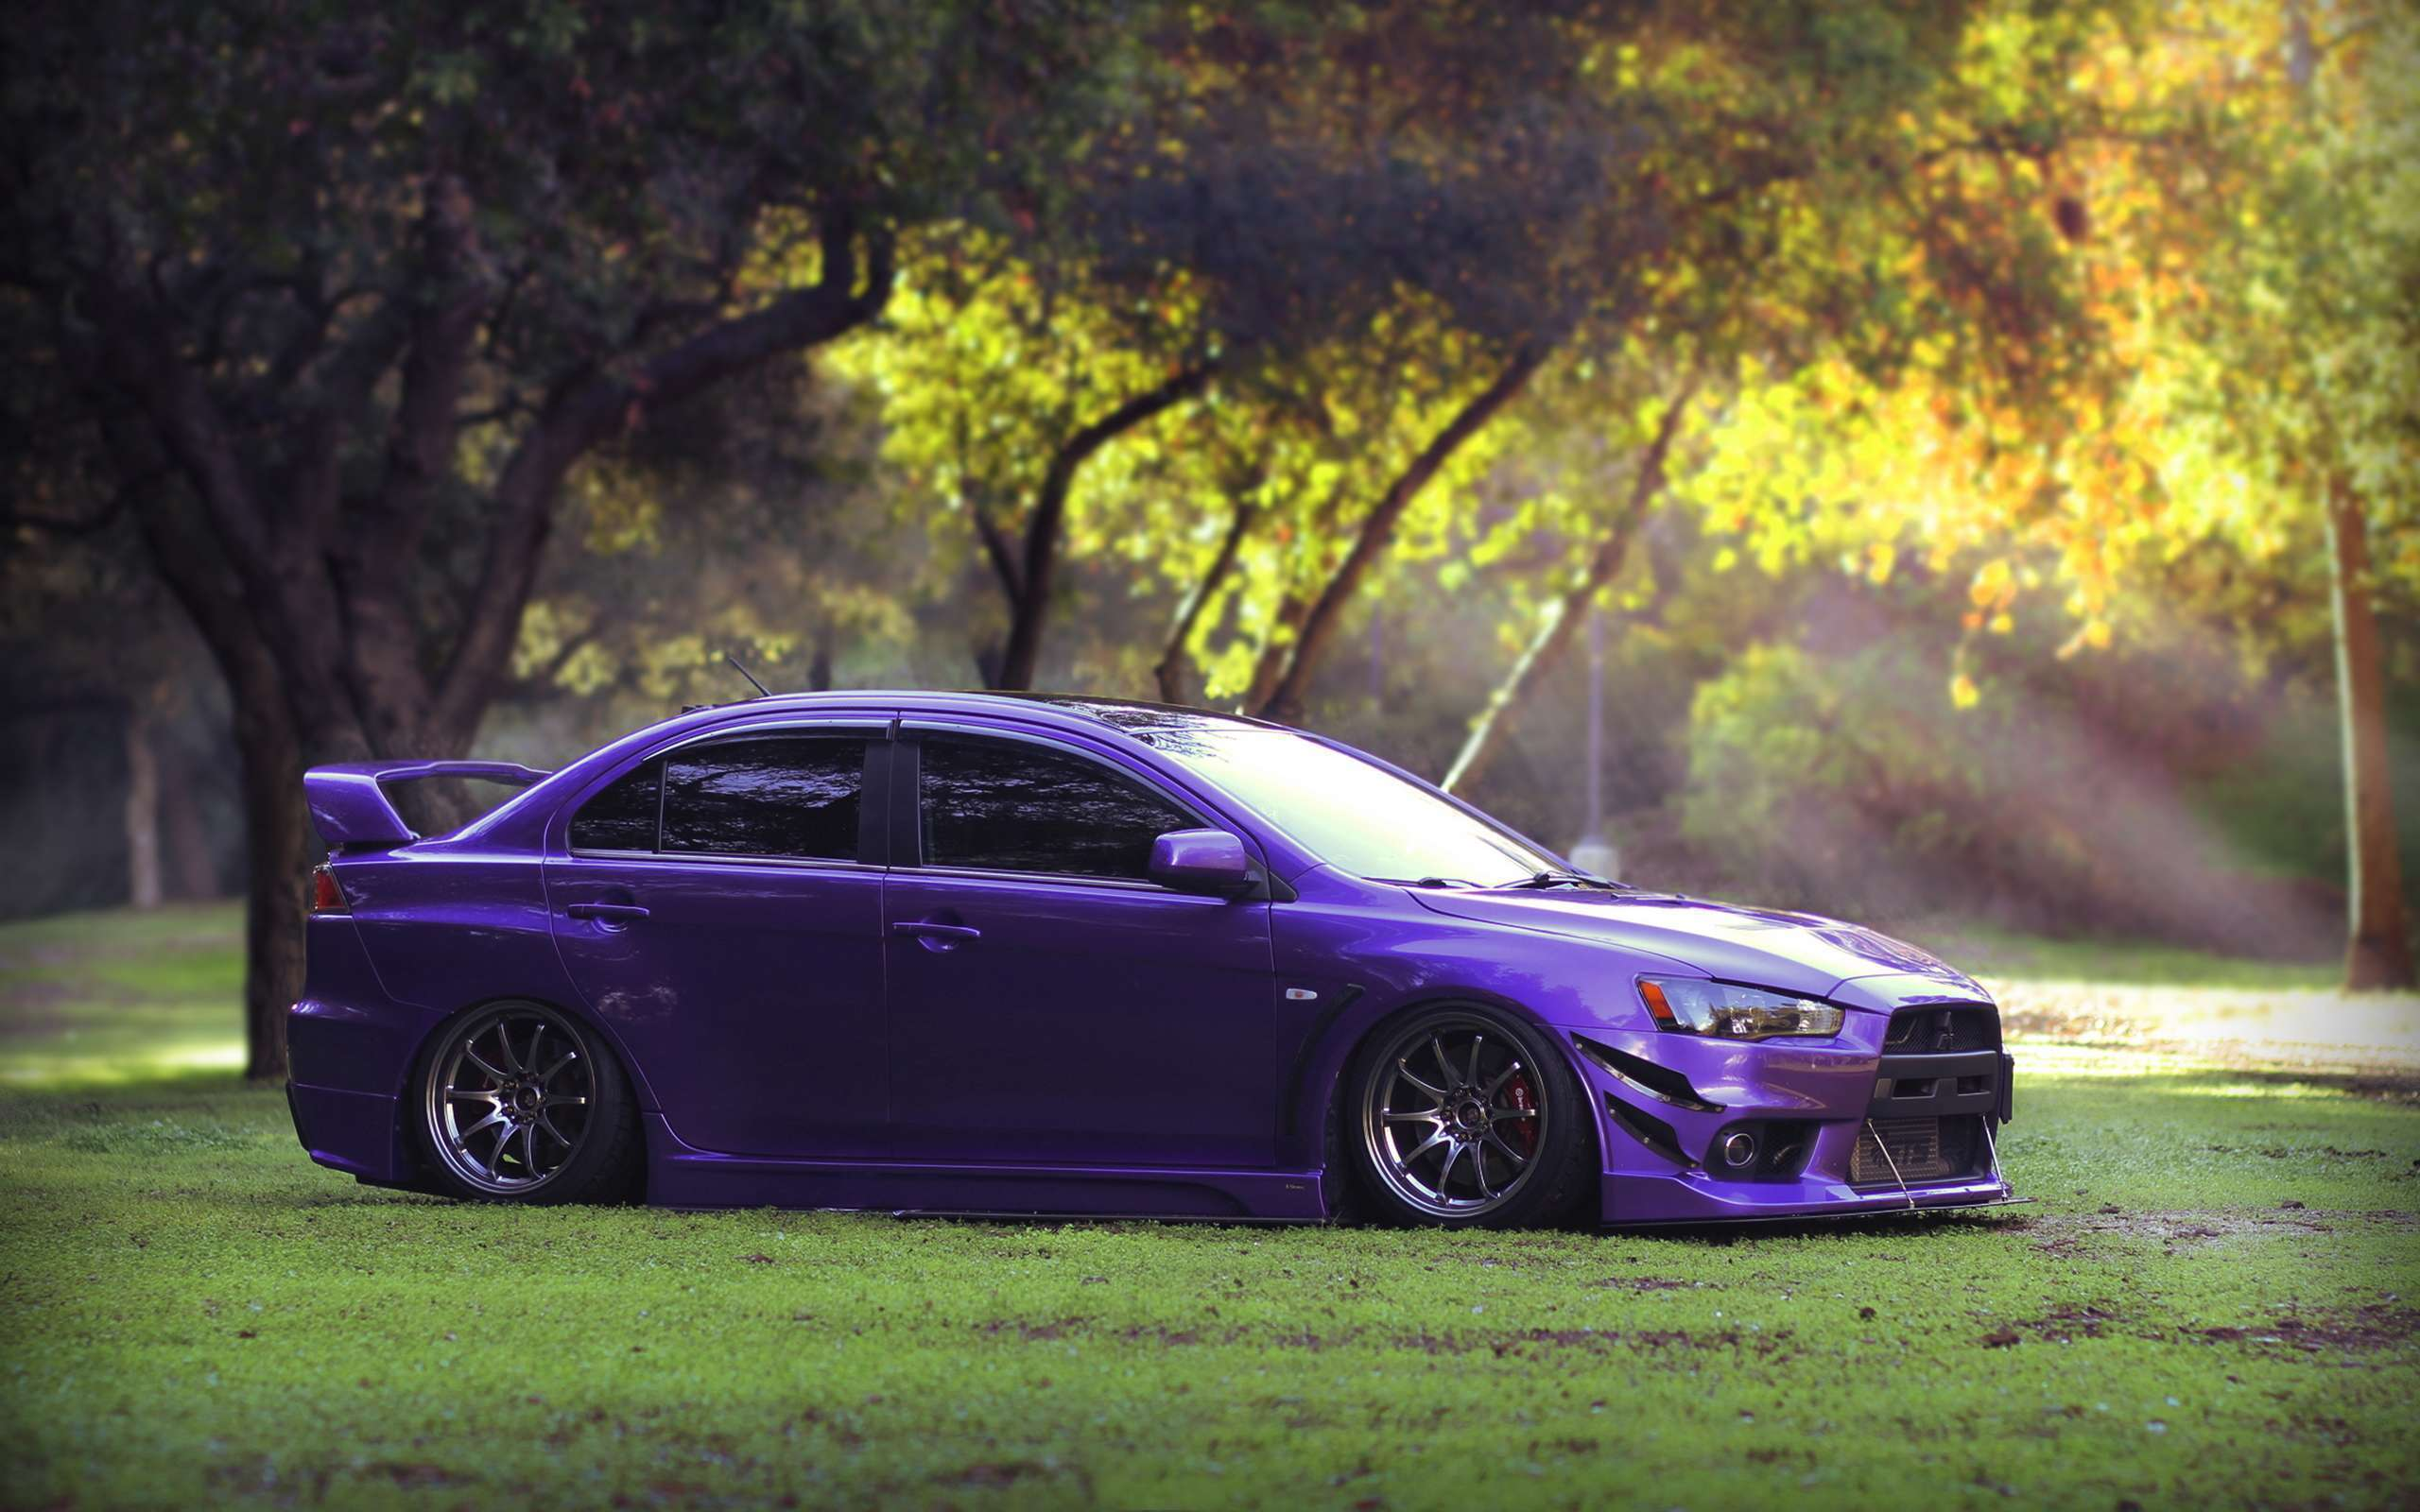 Mitsubishi Lancer Evo X Hd Wallpapers : Hd Car Wallpapers